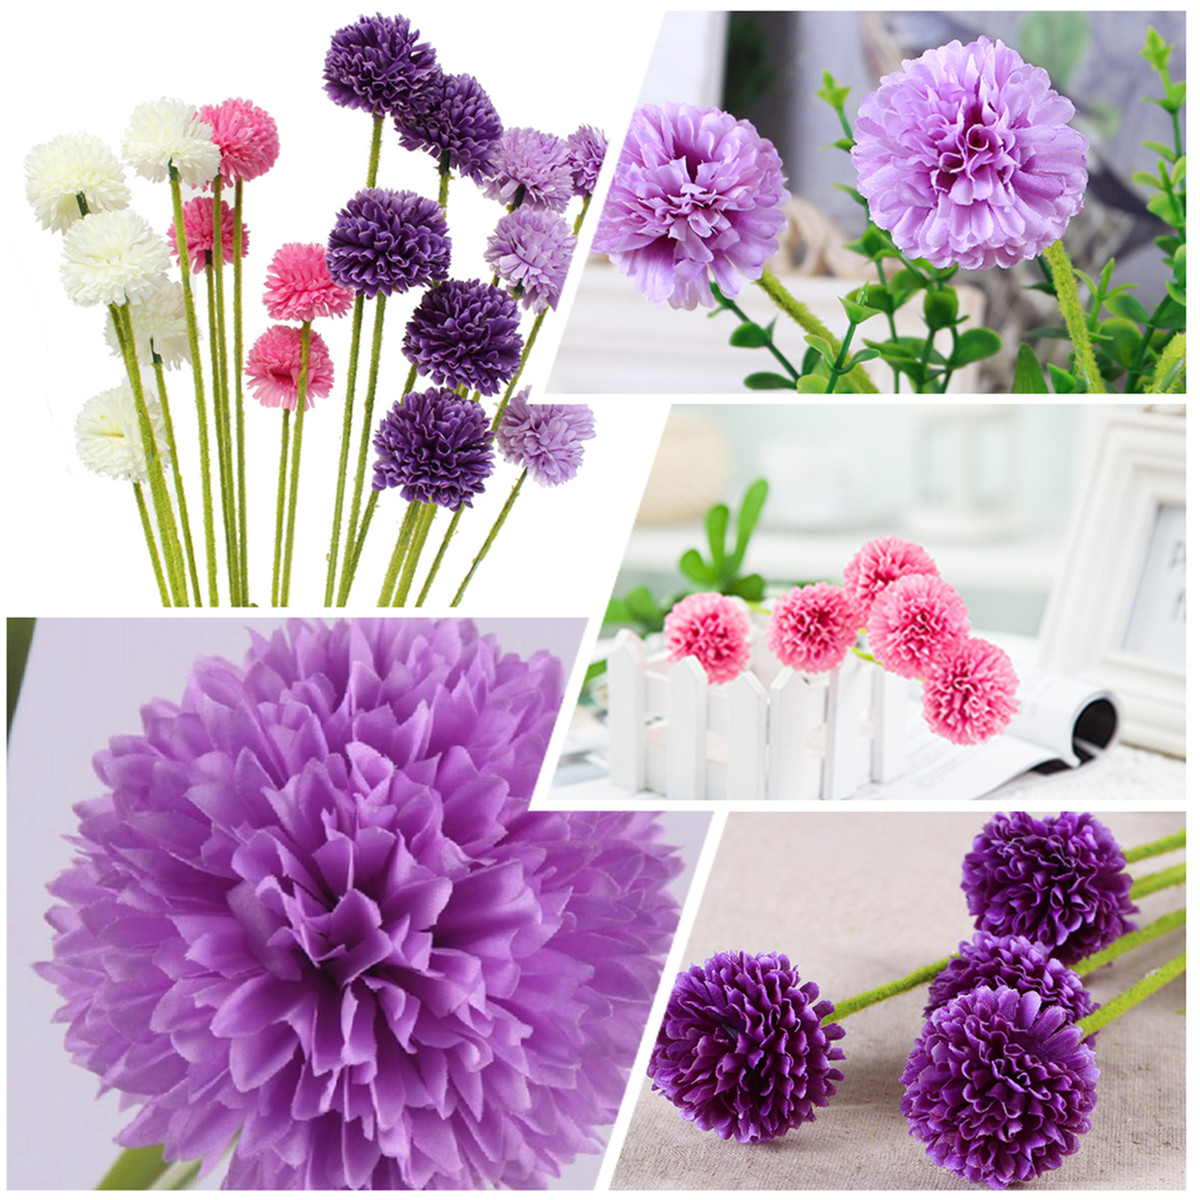 5 Heads Lavender Ball Artificial Silk Flowers Bouquet Simulation Home Wedding Party Decor Gift